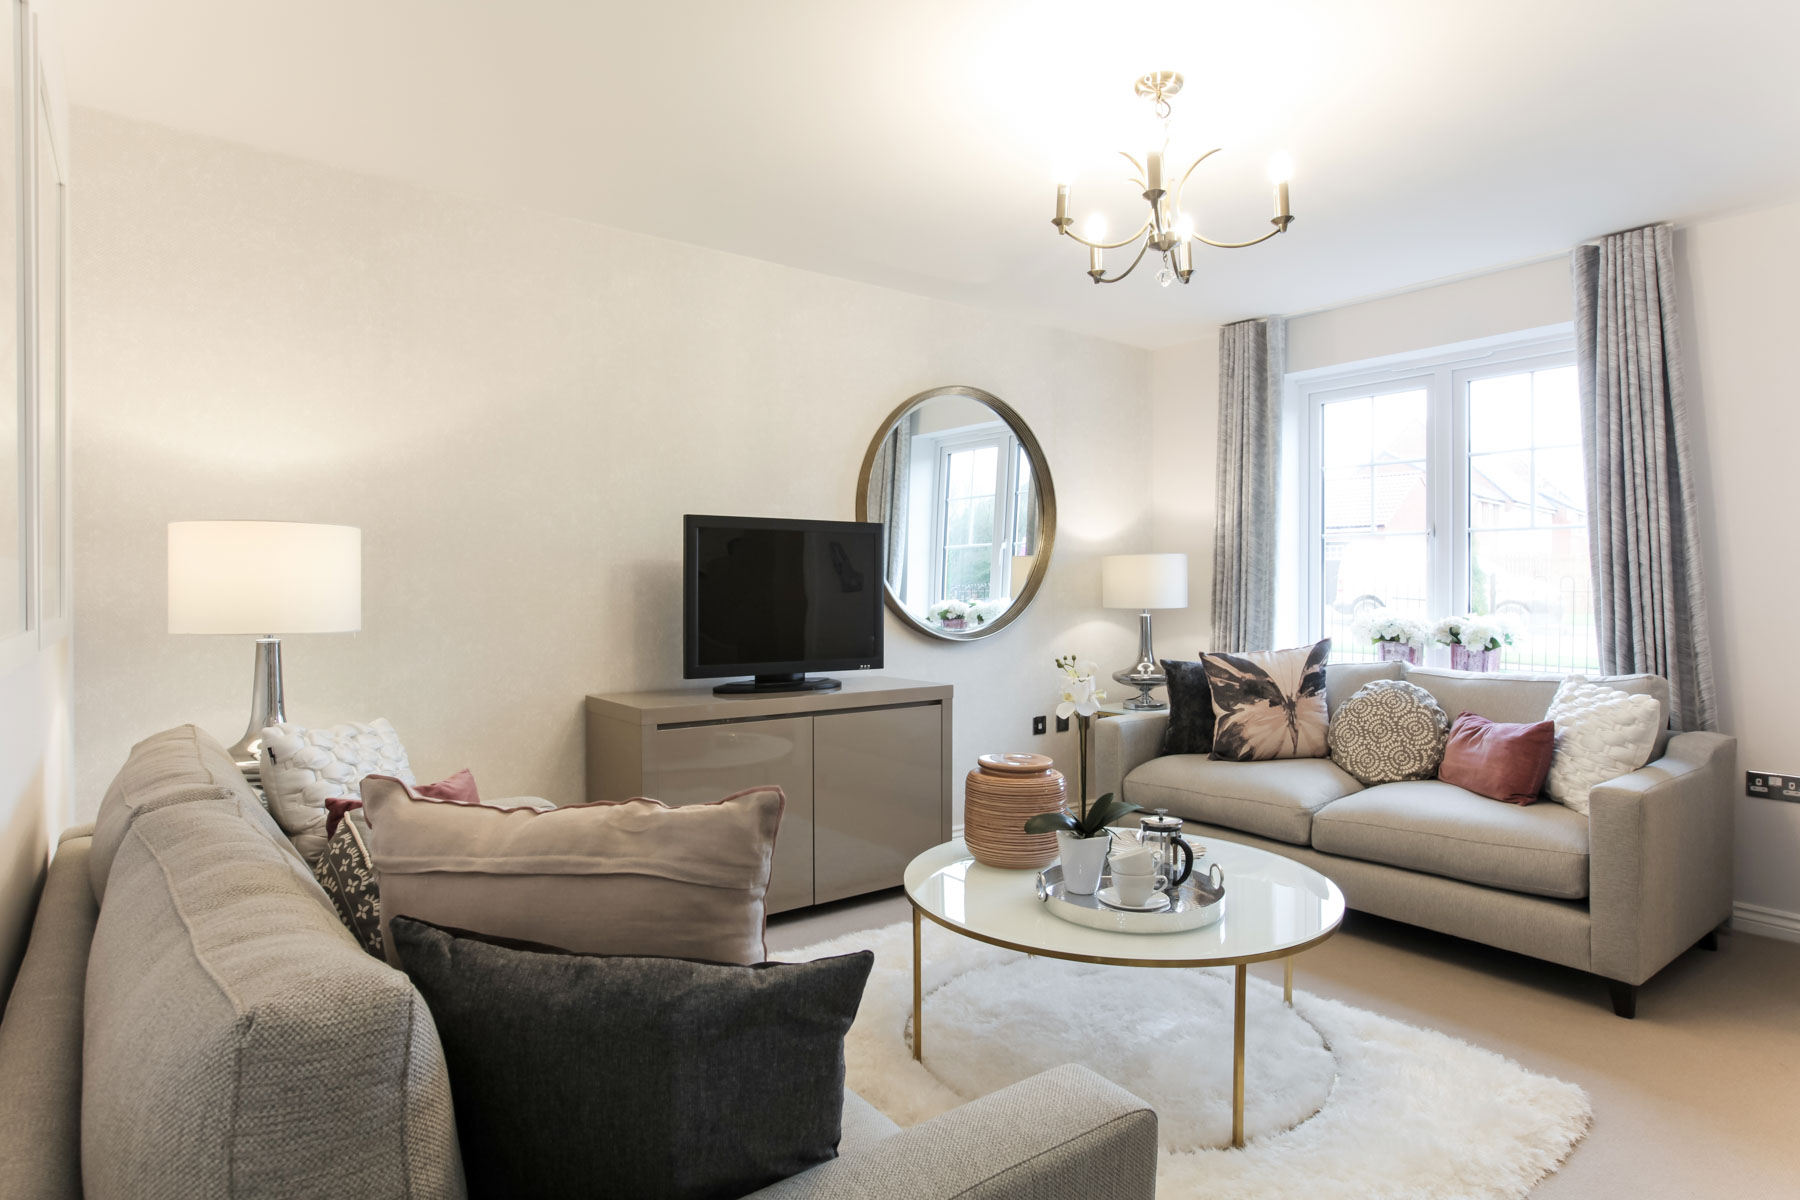 TW Exeter - Mountbatten Mews - Gosford example living room 2